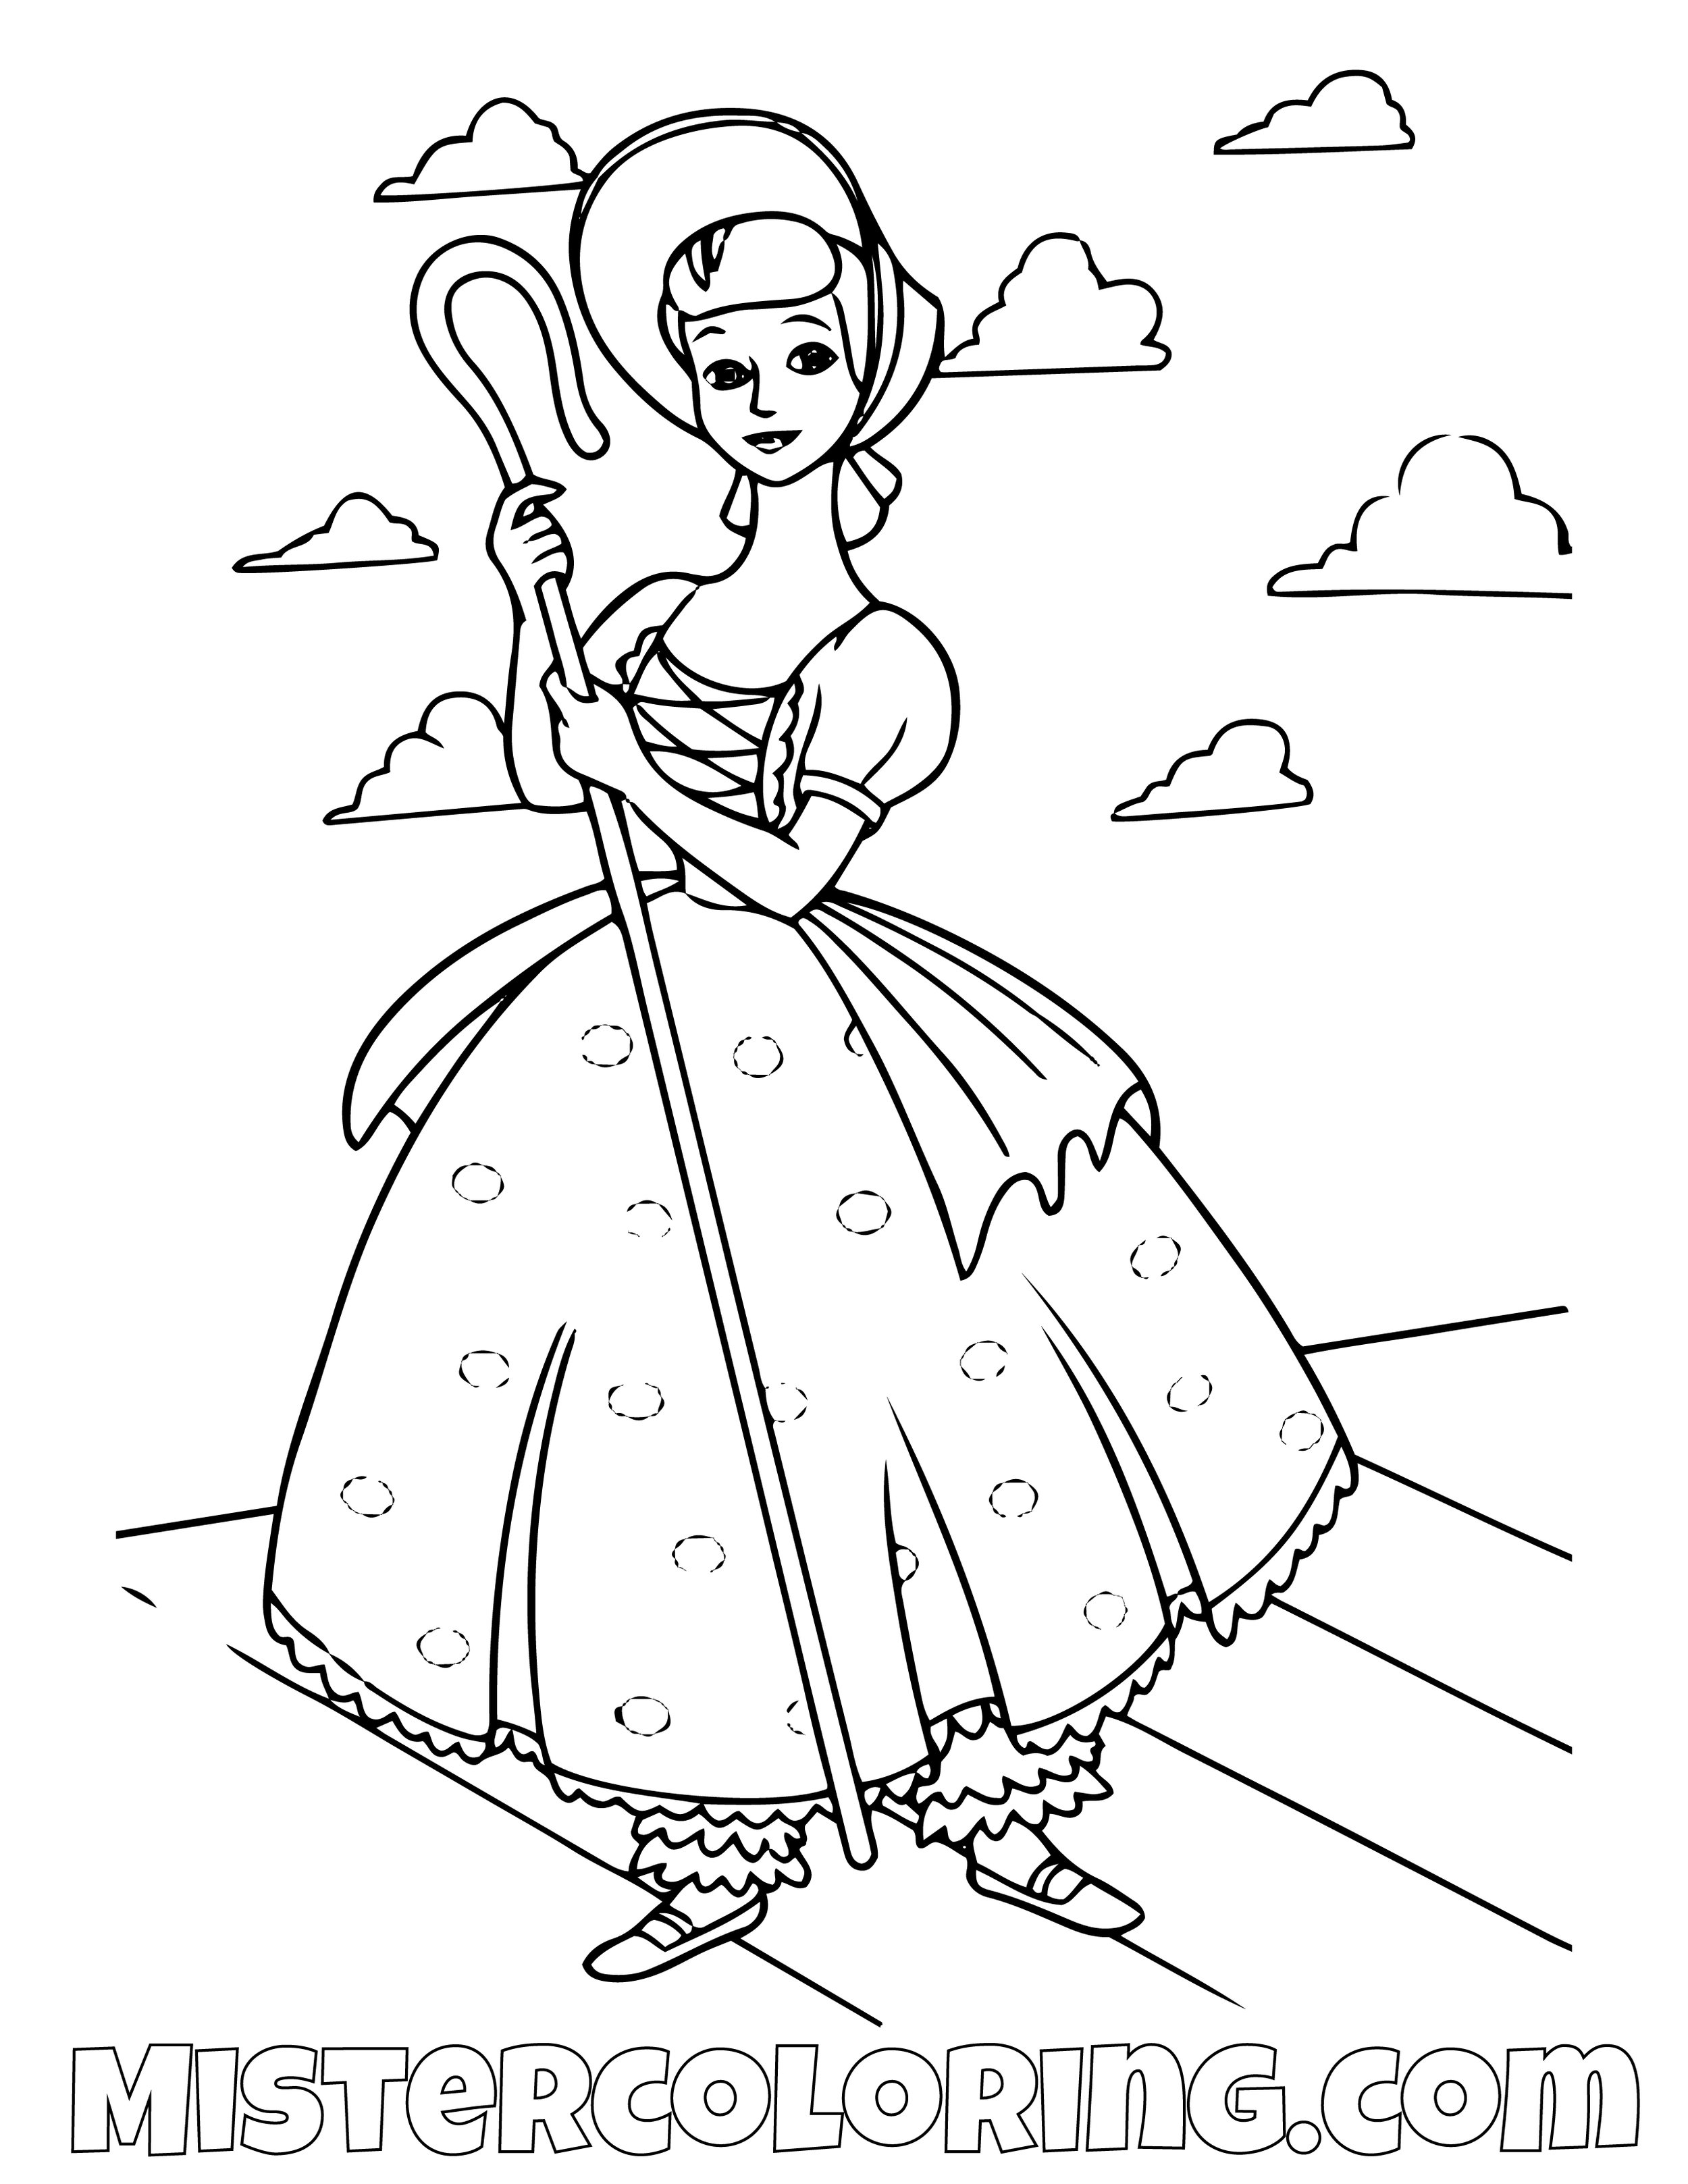 Little Bo Peep Toy Story Coloring Page